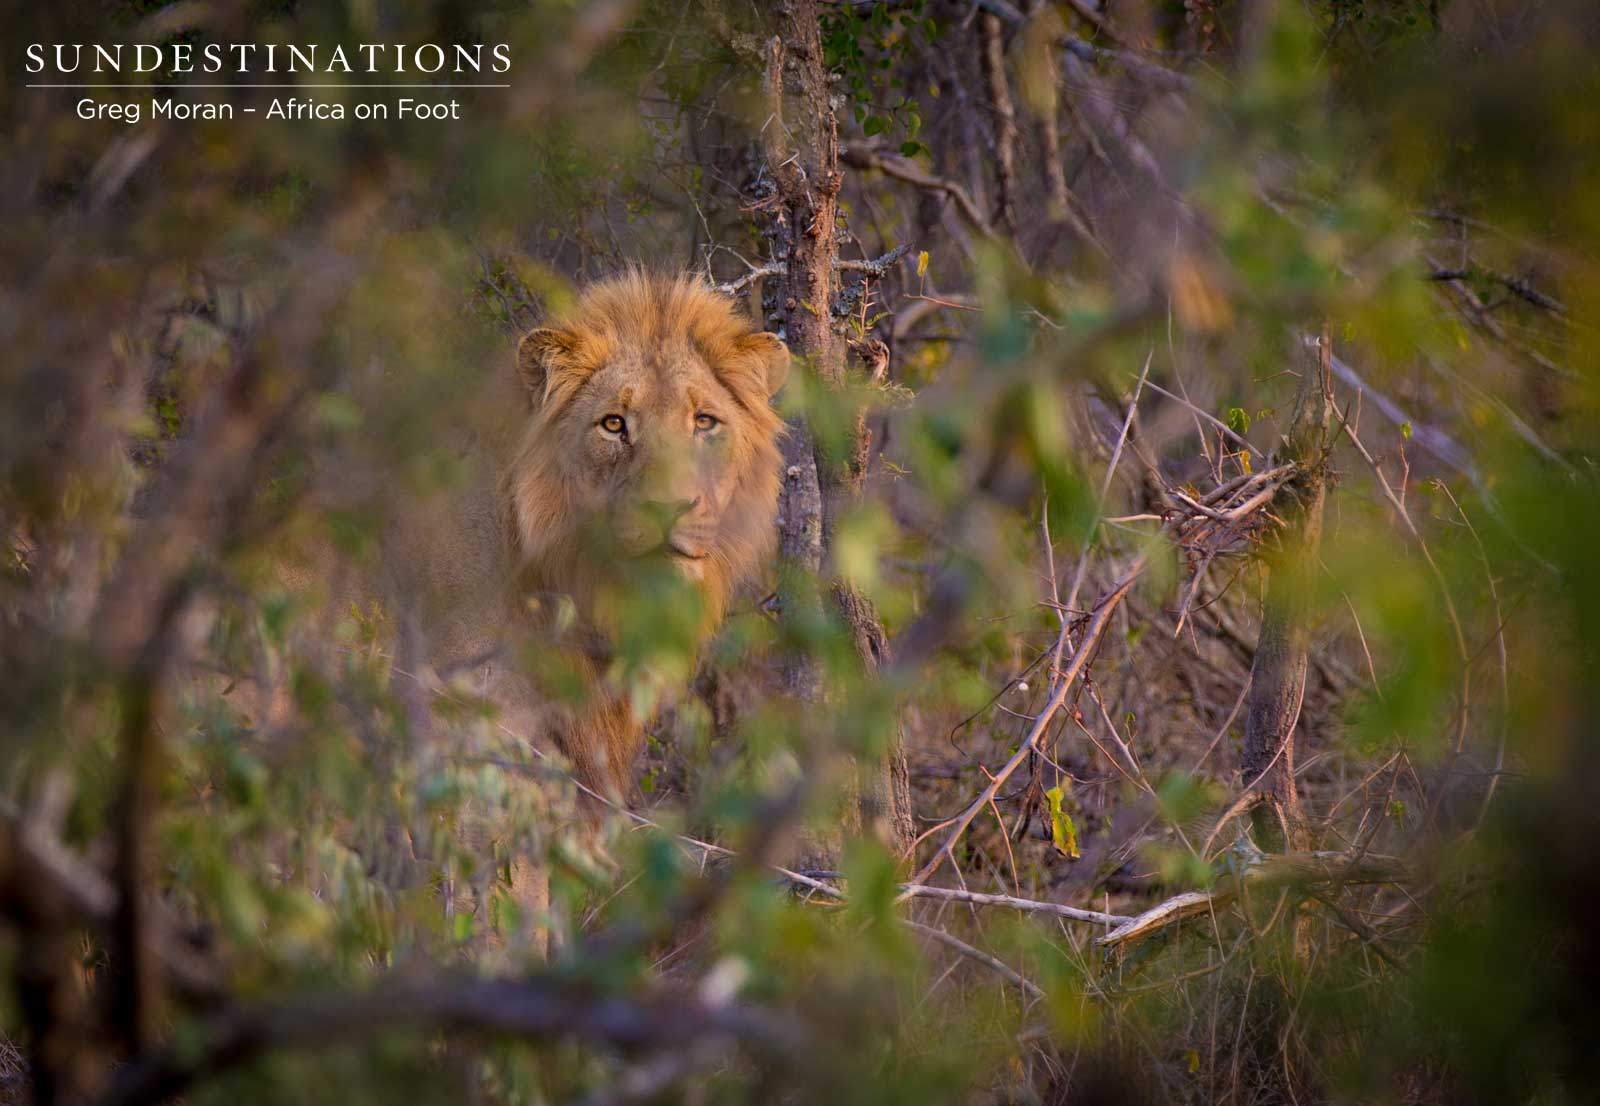 WHAT? Two New Male Lions Mate with Ross Lionesses